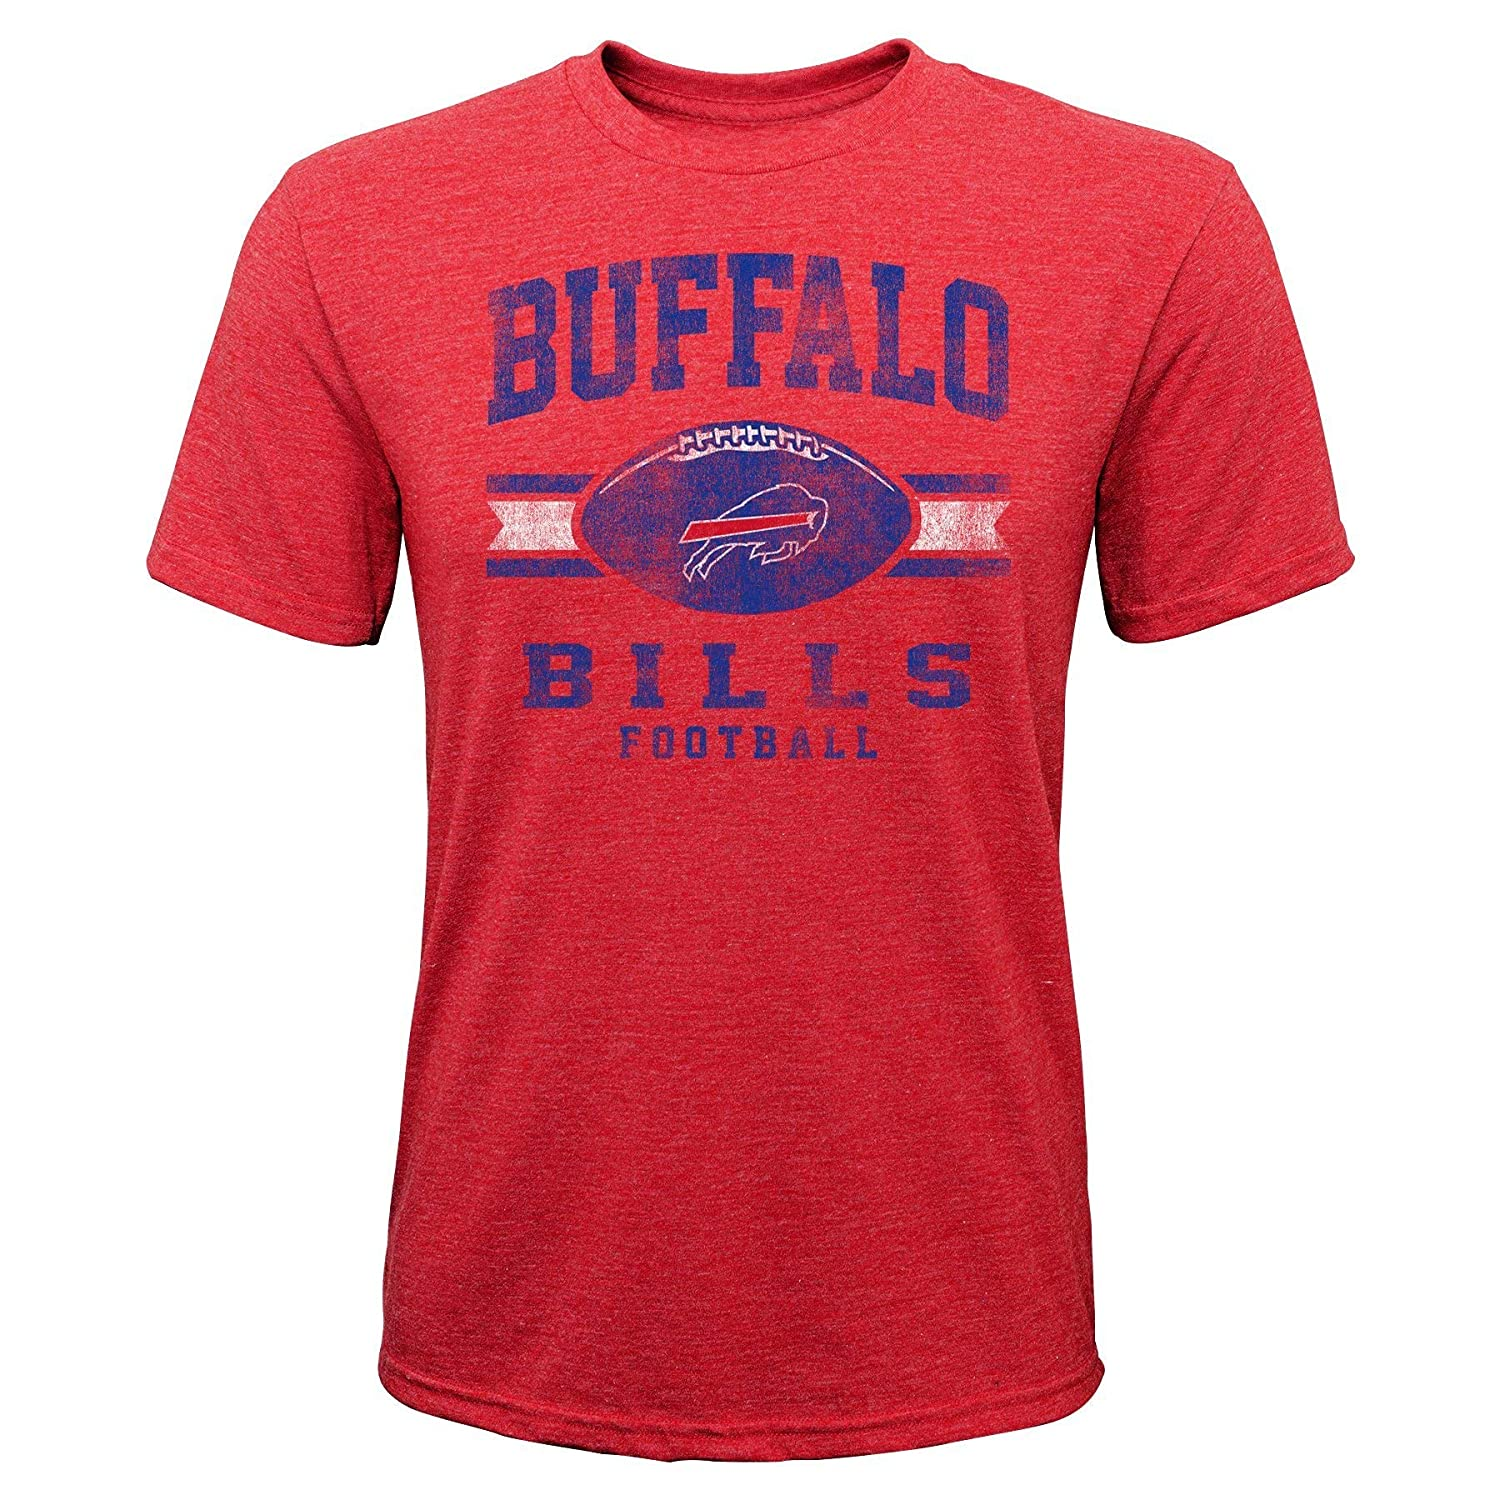 Youth Large Outerstuff NFL NFL Buffalo Bills Youth Boys Player Pride Short Sleeve Tri-Blend Tee Red 14-16